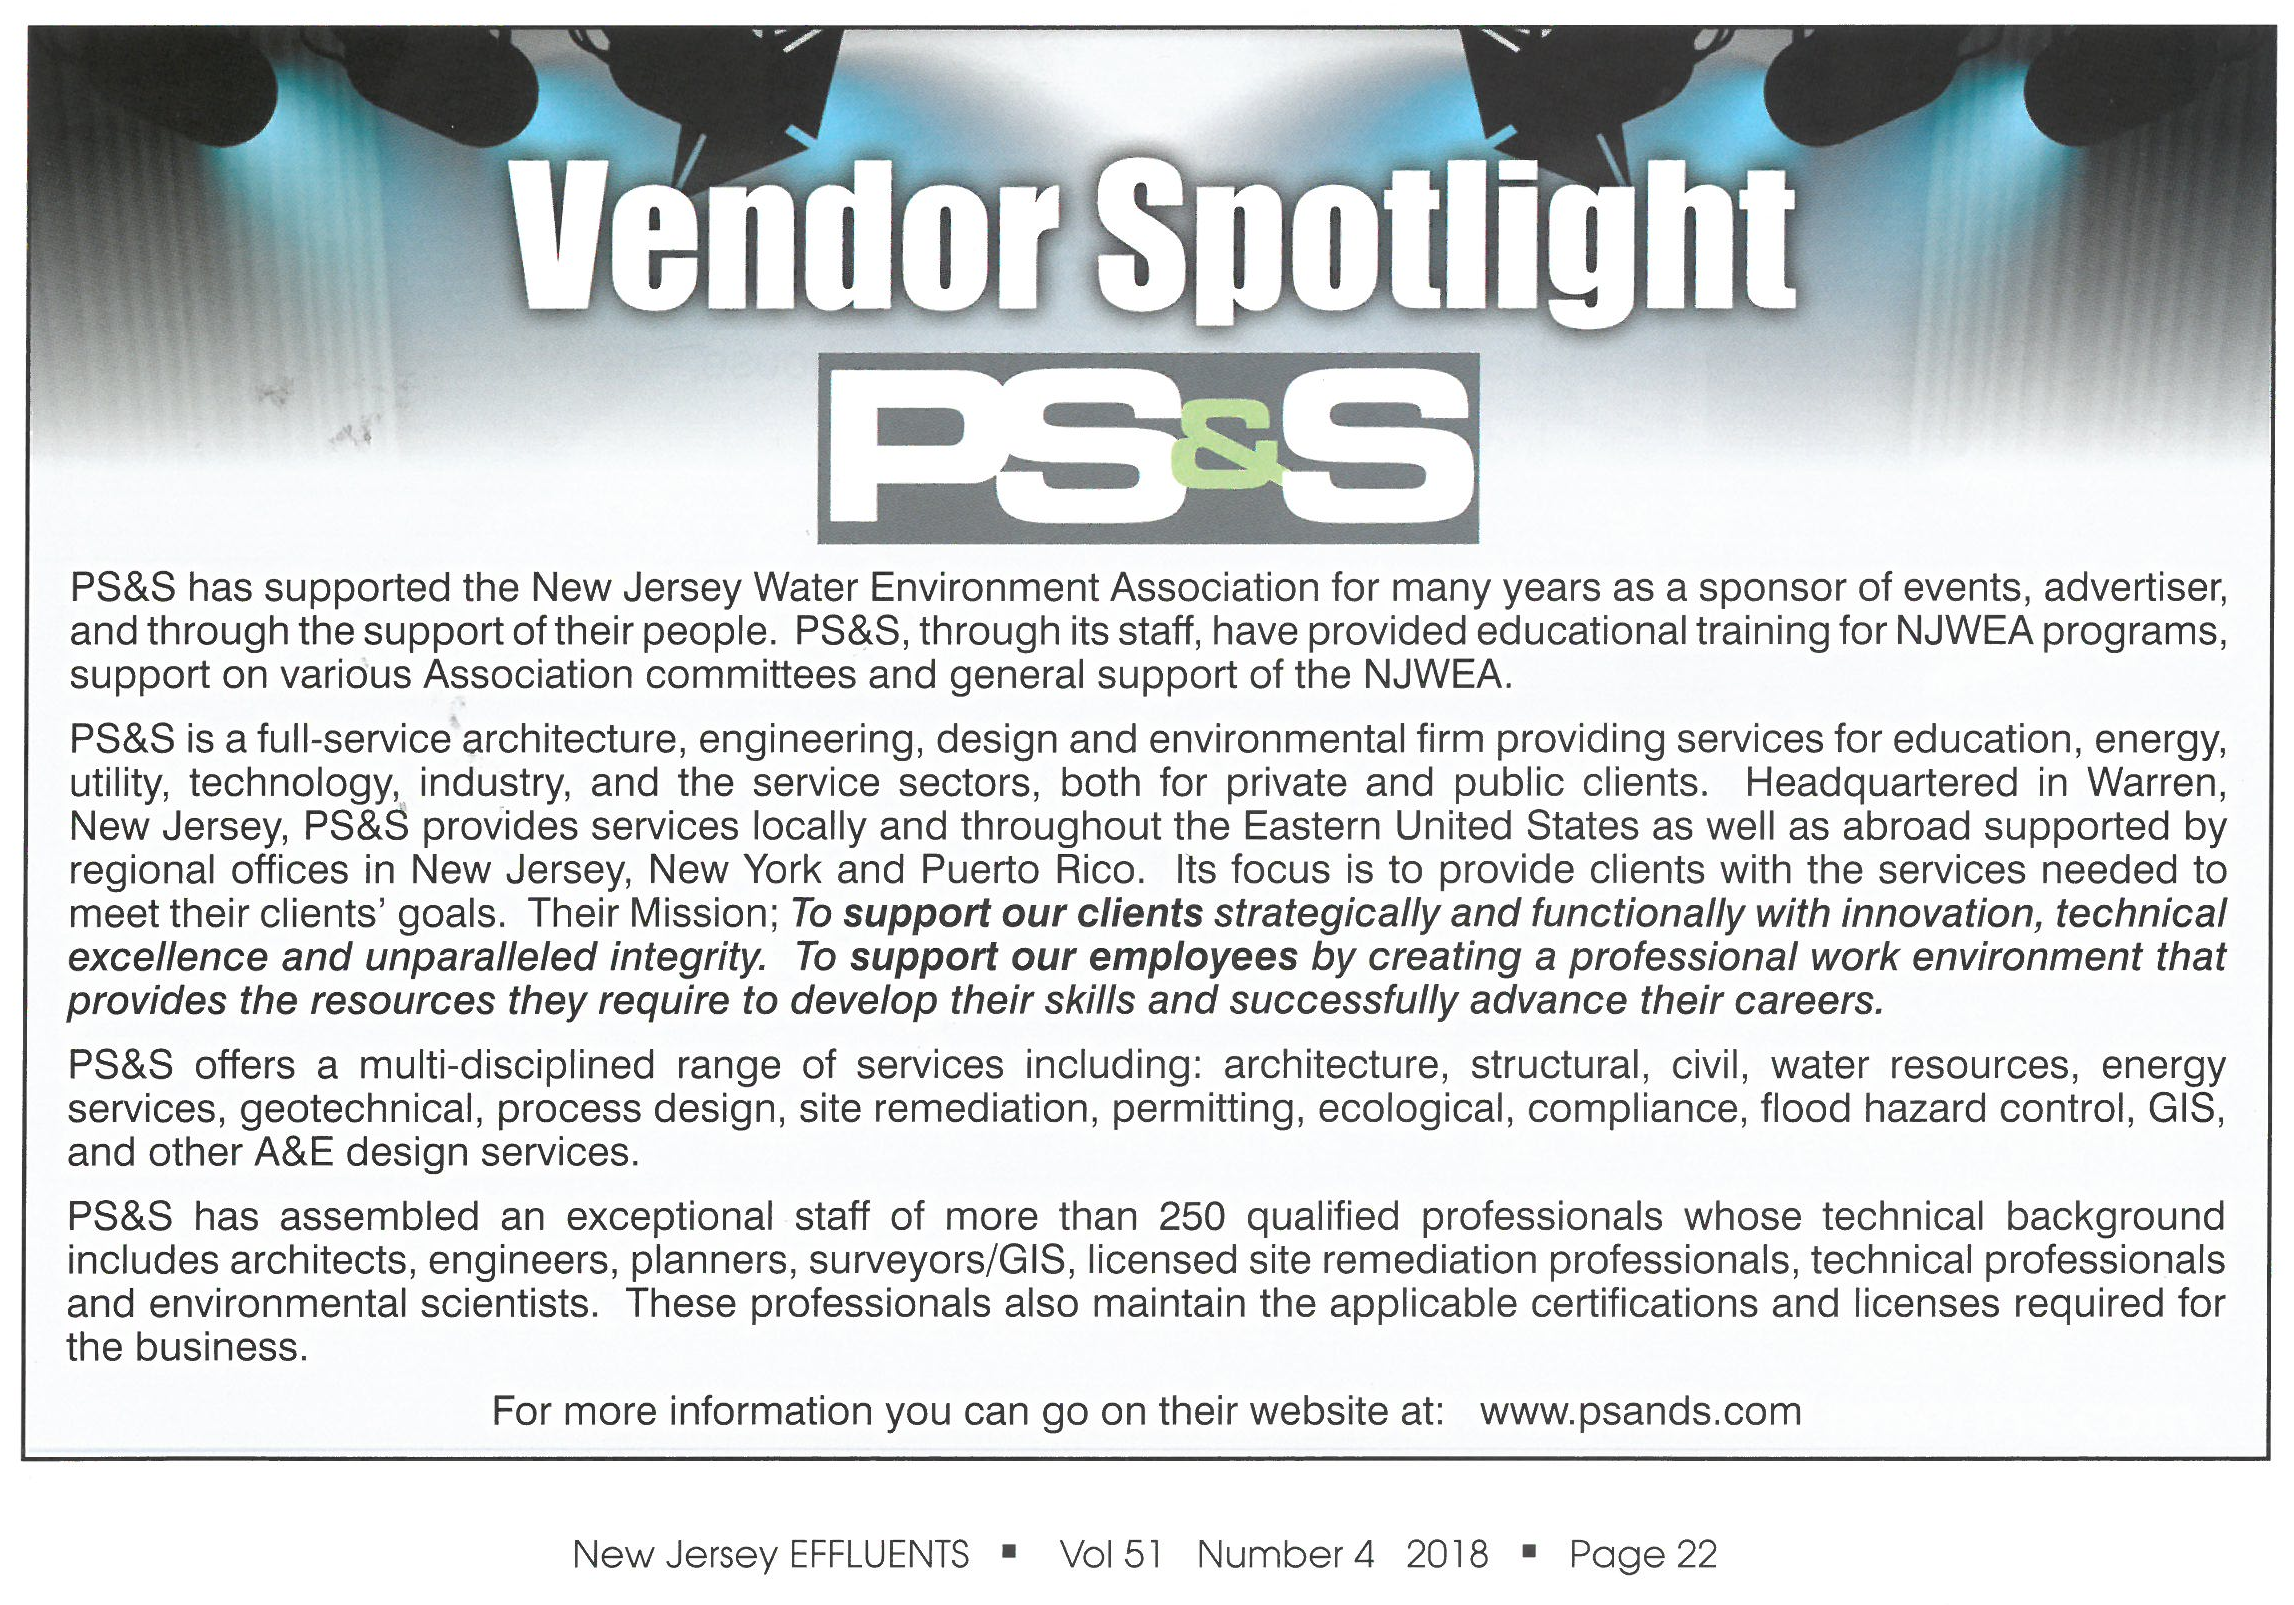 NJ EFFLUENTS - Vendor Spotlight Vol 51 No 1.png